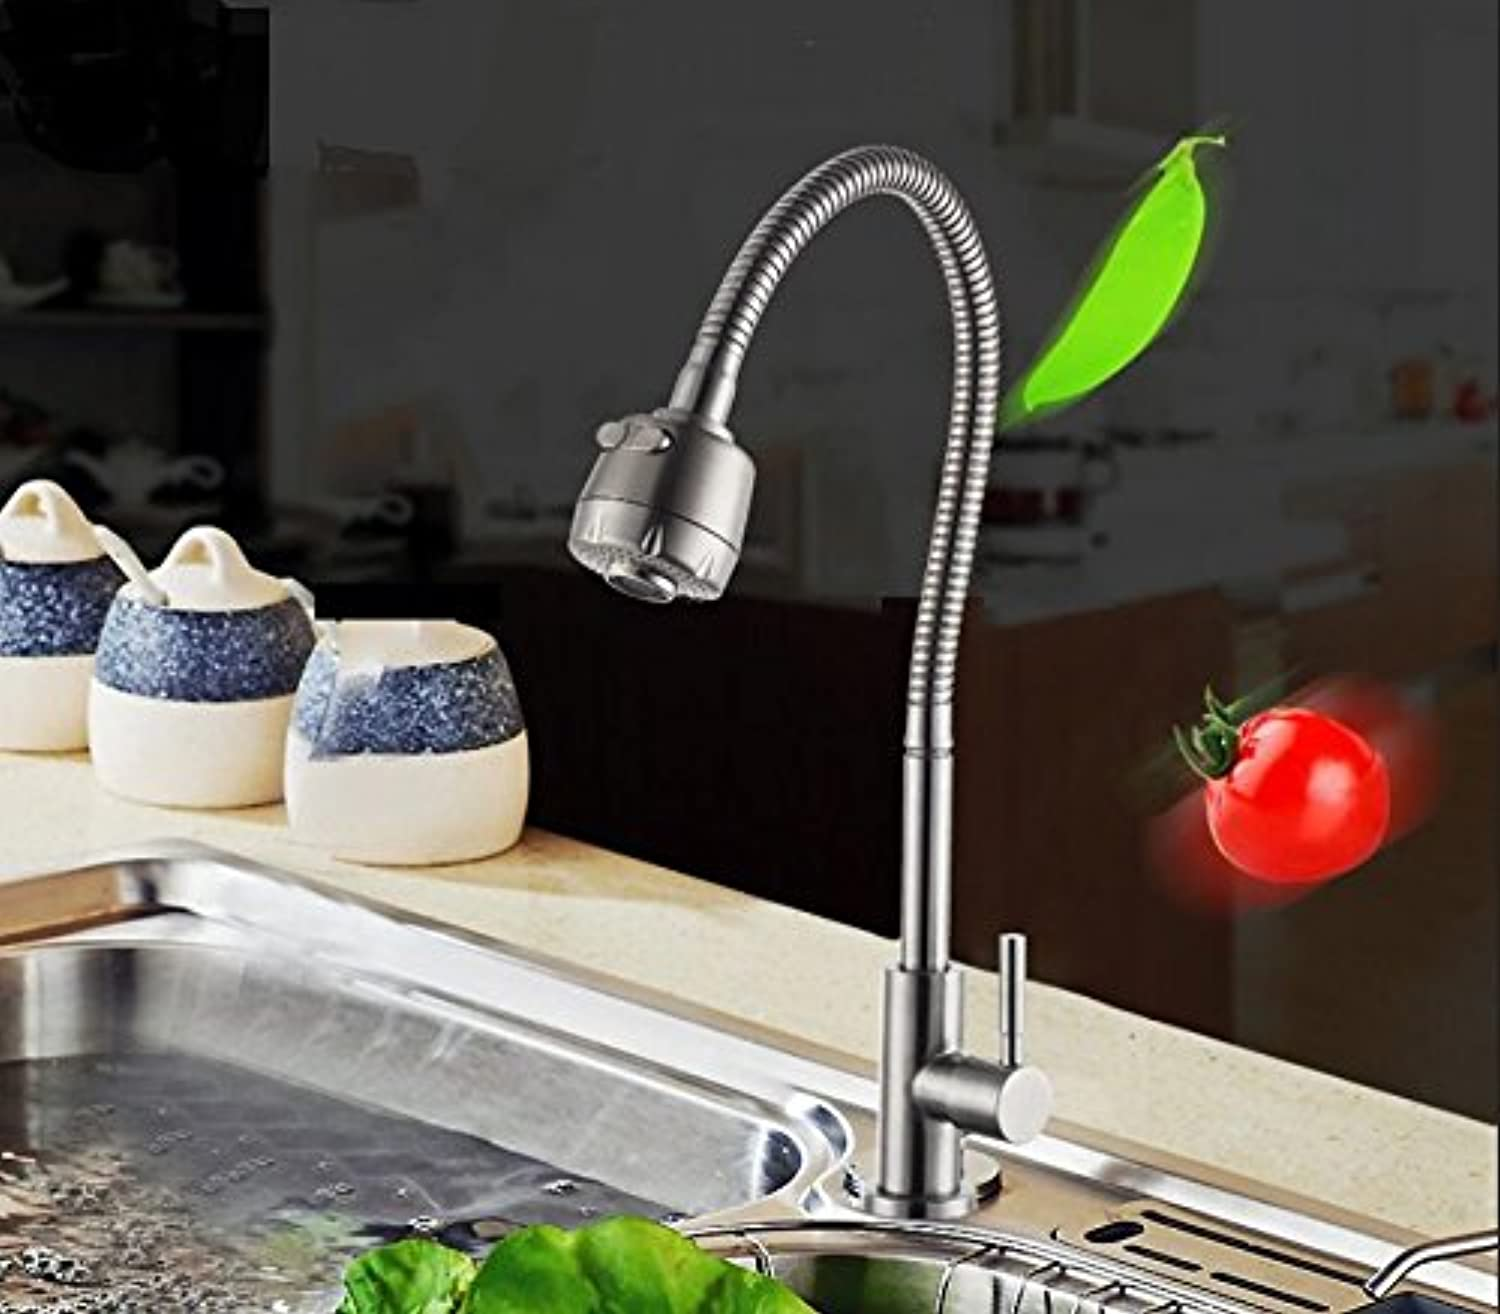 WINZSC Stainless steel single cold redary shower head double outlet faucet kitchen dish basin balcony mop pool faucet lo3 (color   A)